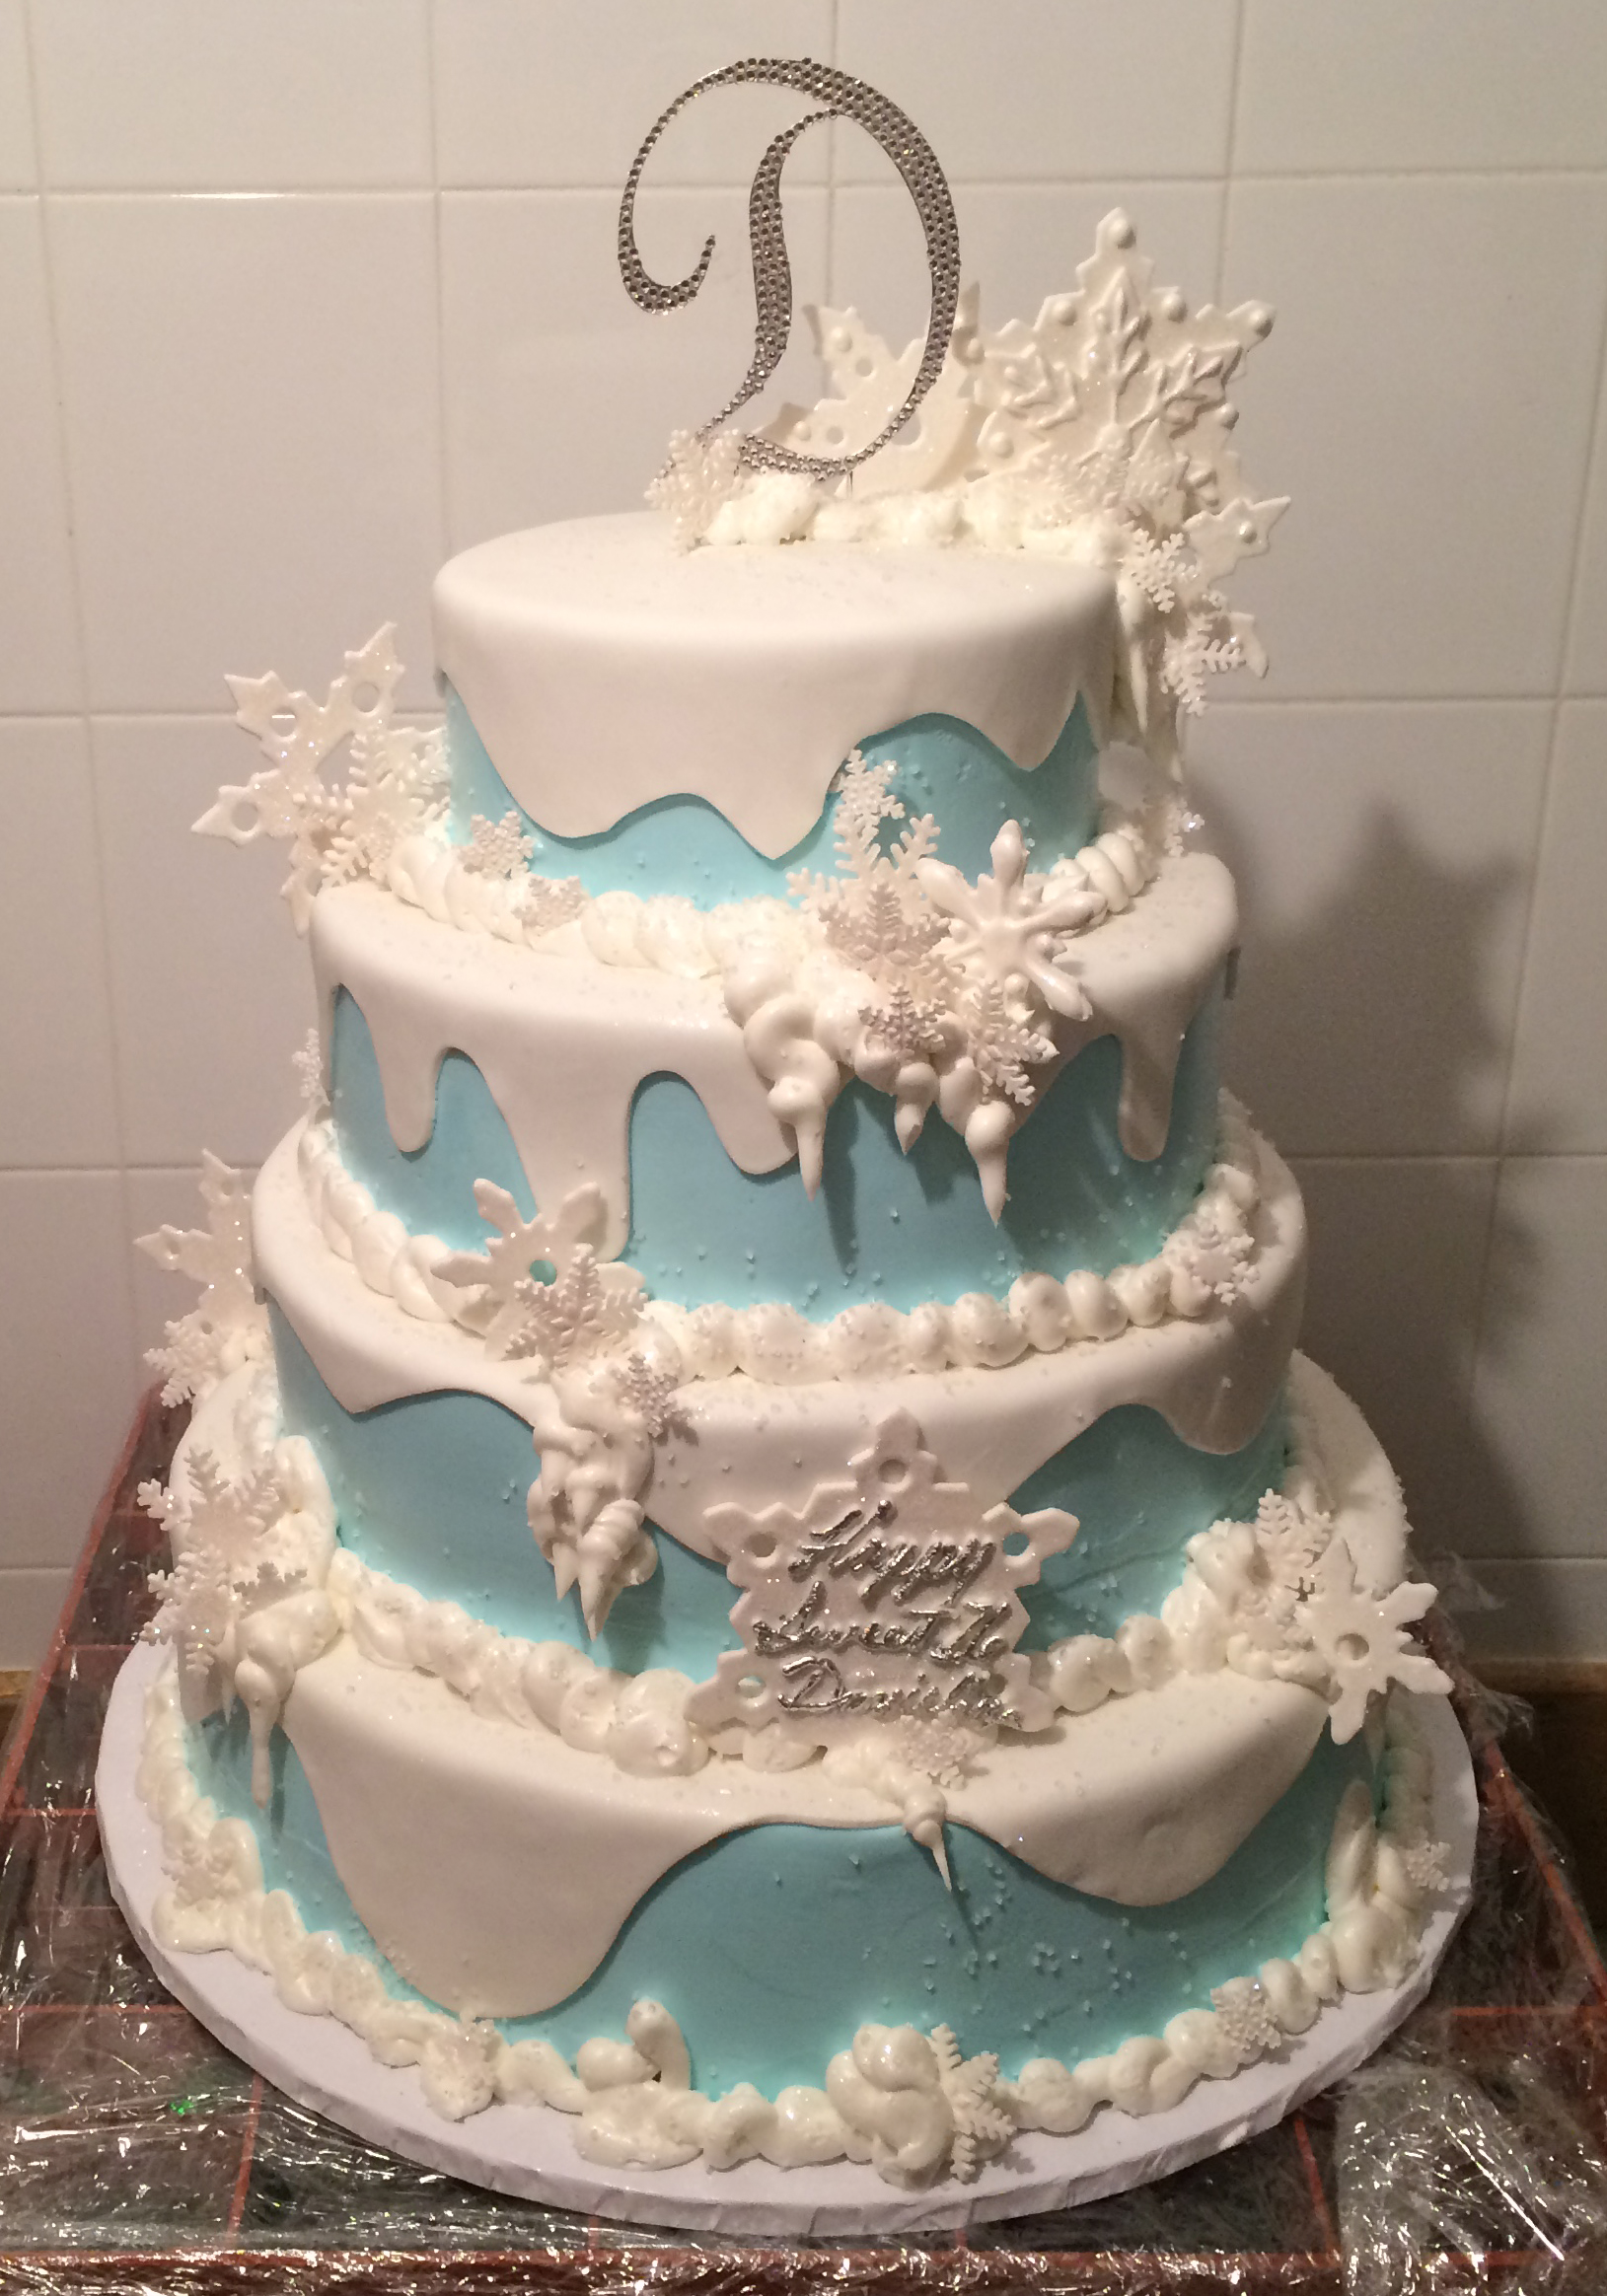 Blue butter cream with white rolled fondant & fondant snowflakes.jpg